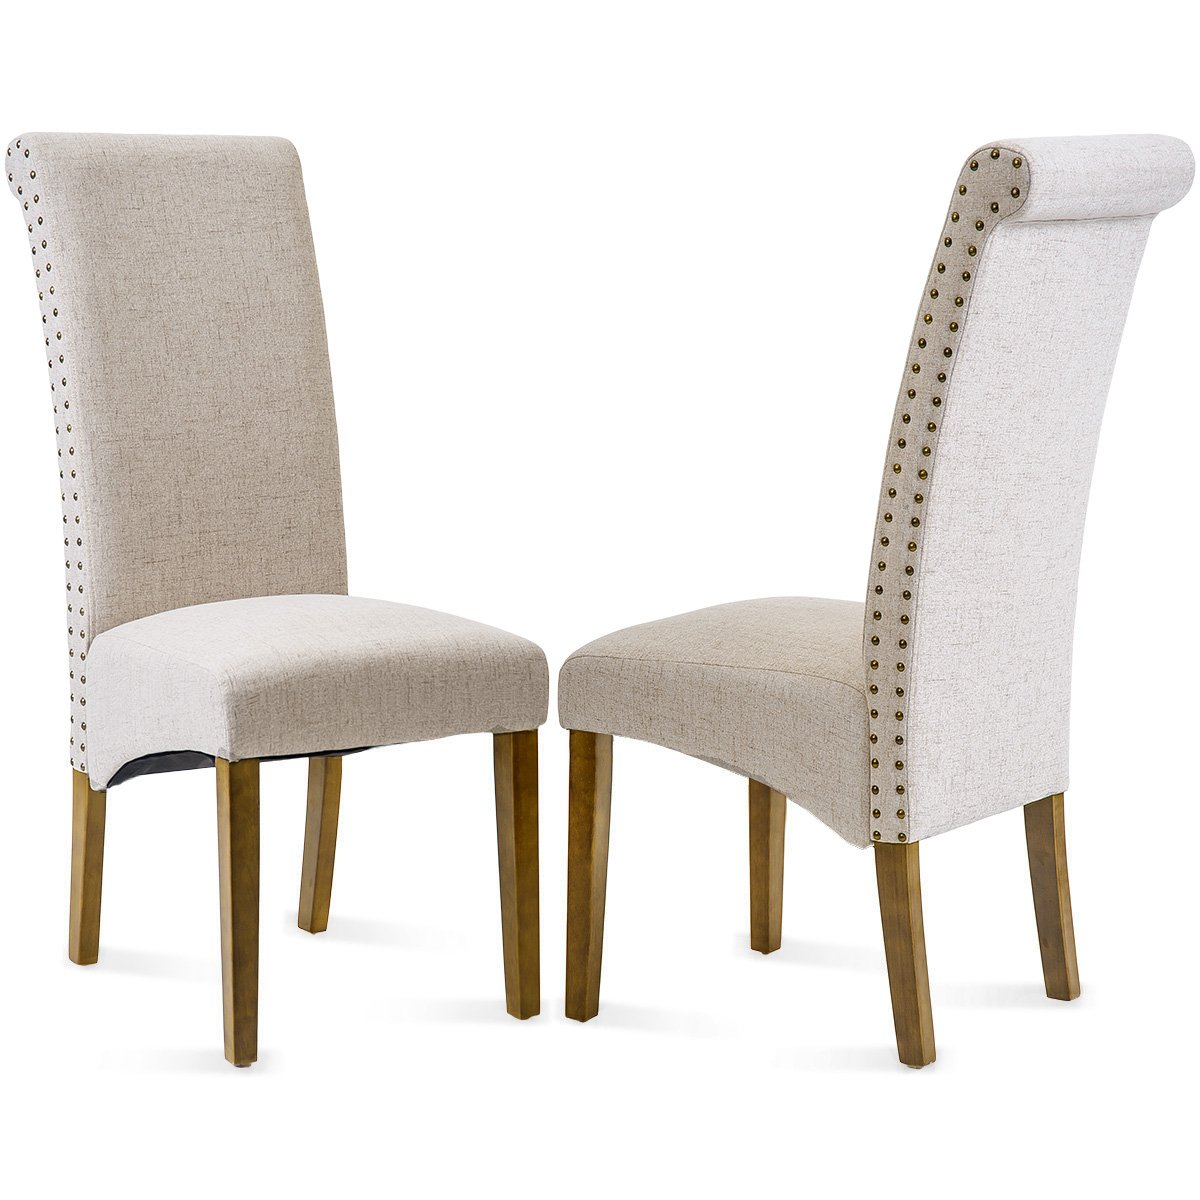 Merax Dining Chairs Set of 2 Fabric Padded Side Chair with Solid Wood Legs, Nailed Trim(Grey) PP036403